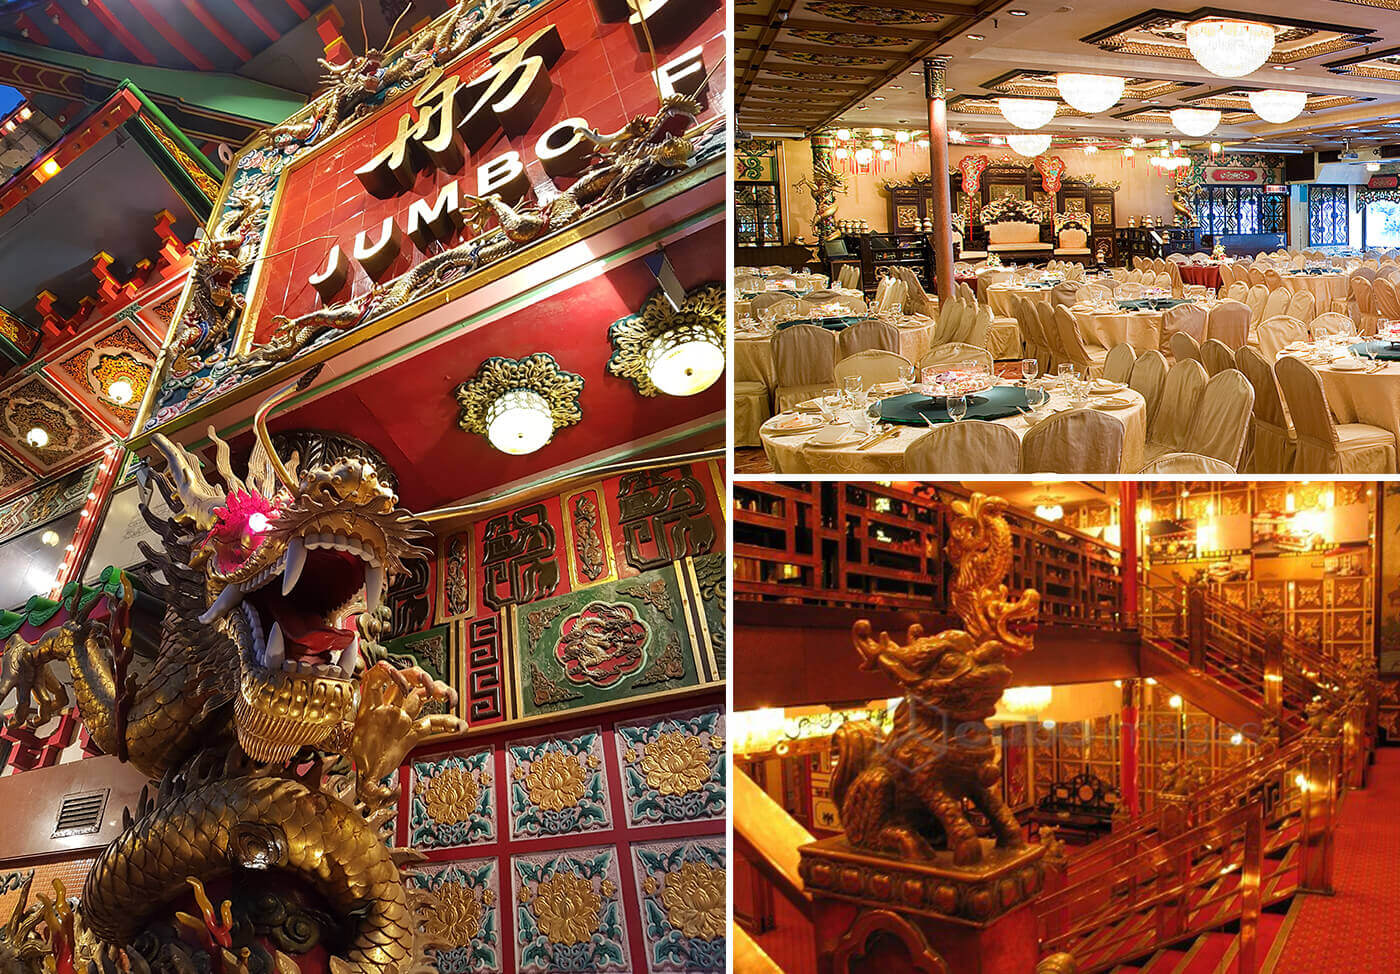 Jumbo-Kingdom-Restaurant-3